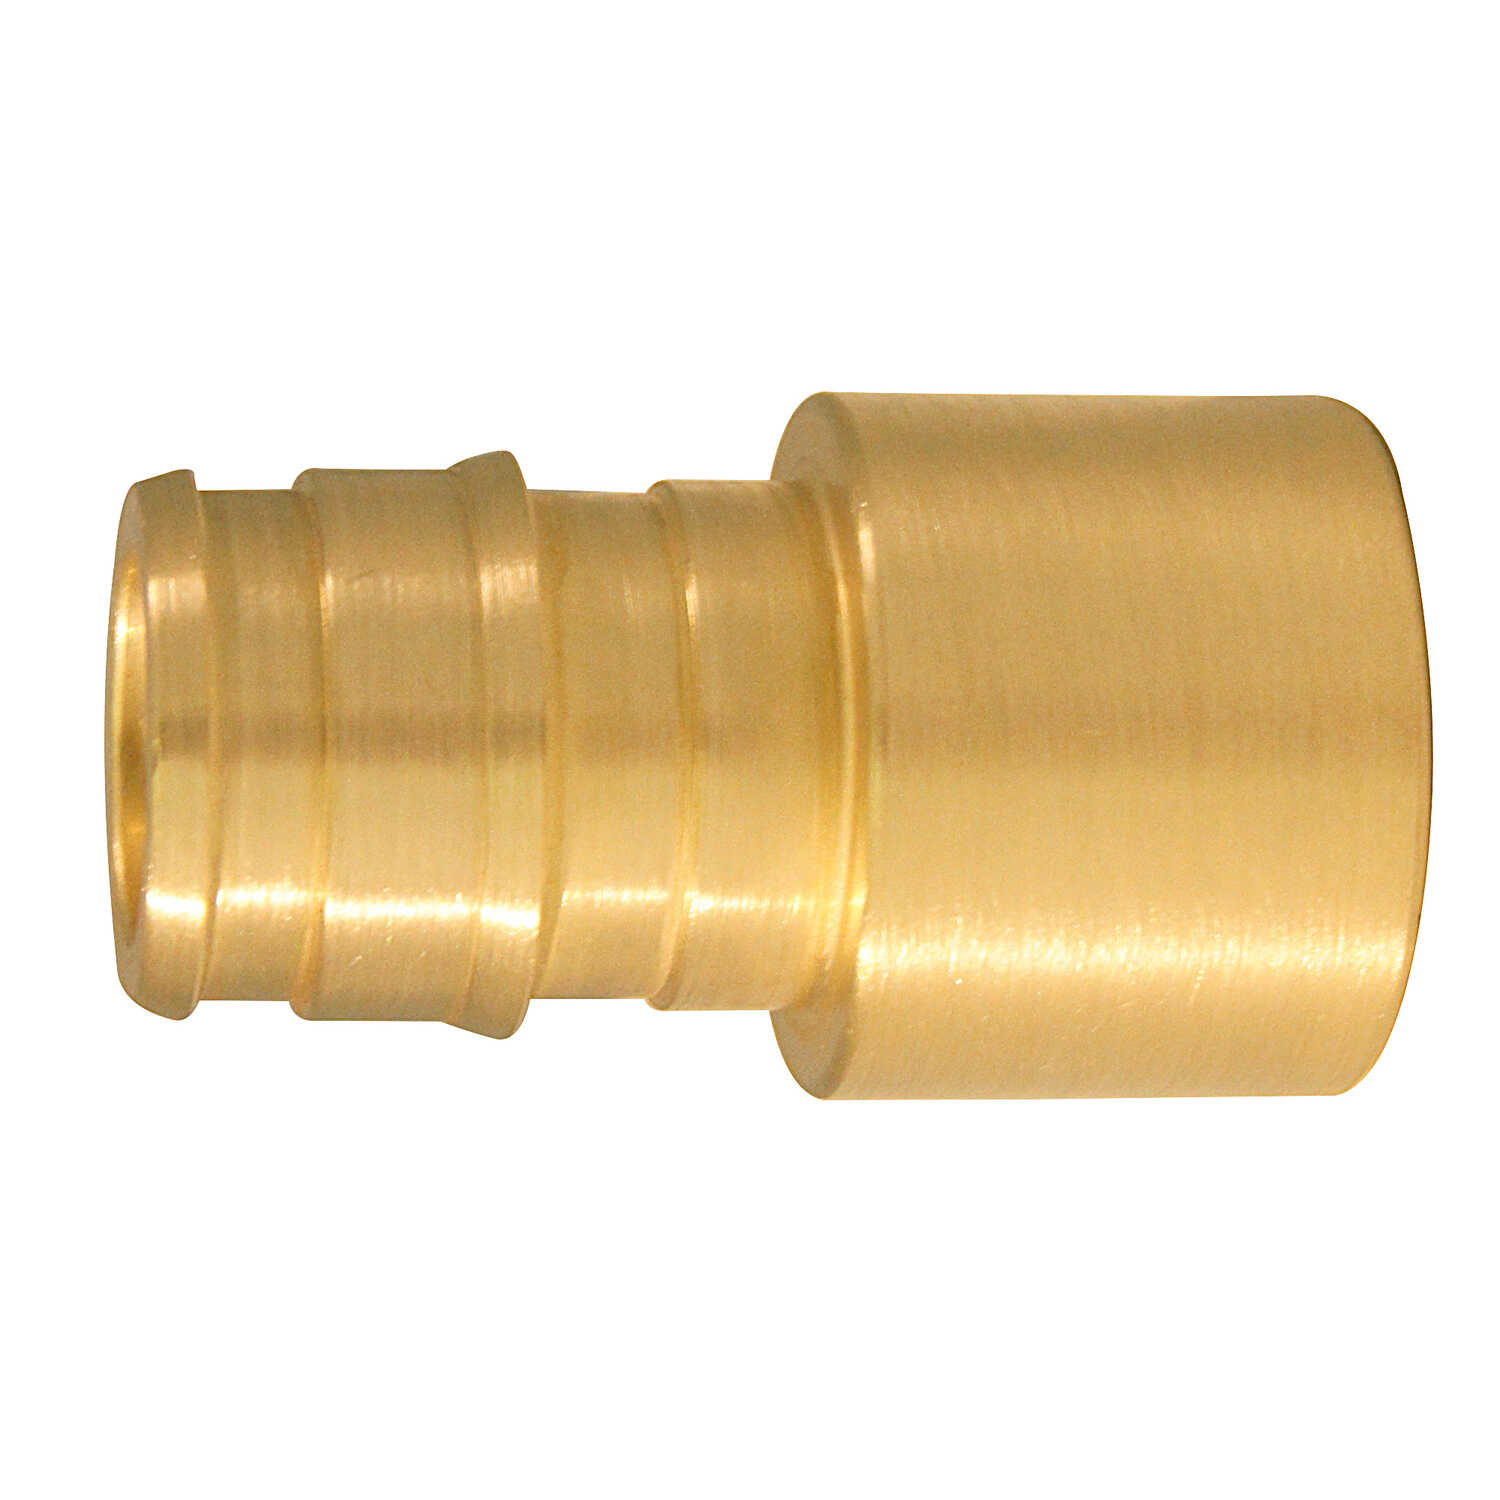 Apollo  Expansion PEX / Pex A  1/2 in. Swivel   x 1/2 in. Dia. PEX  Female Adapter  10 each